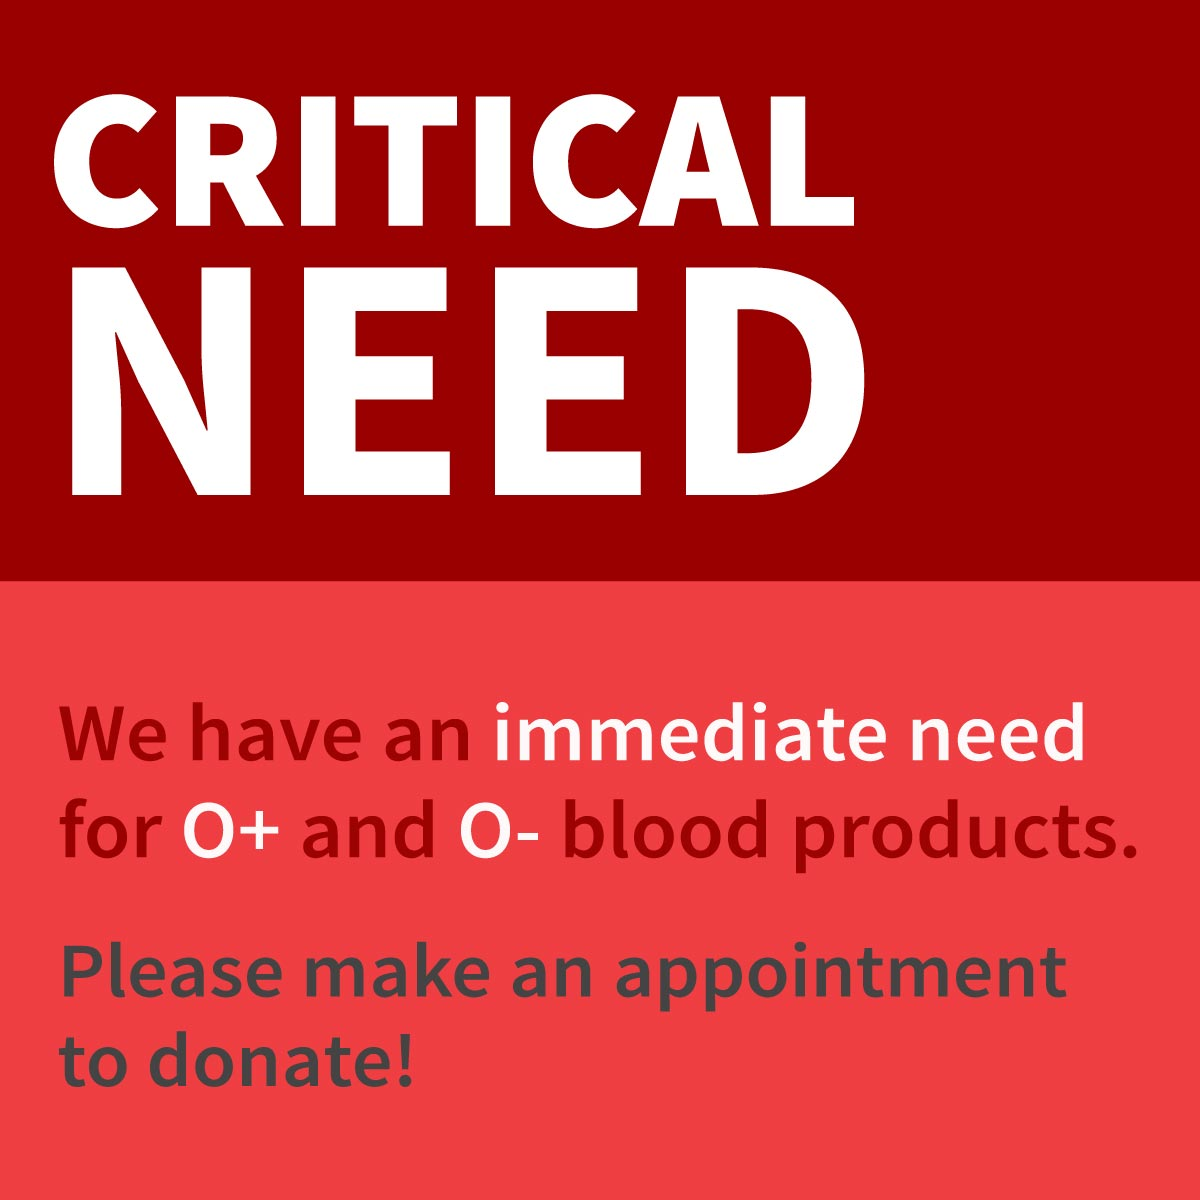 Urgent Need for O- and O+ blood products